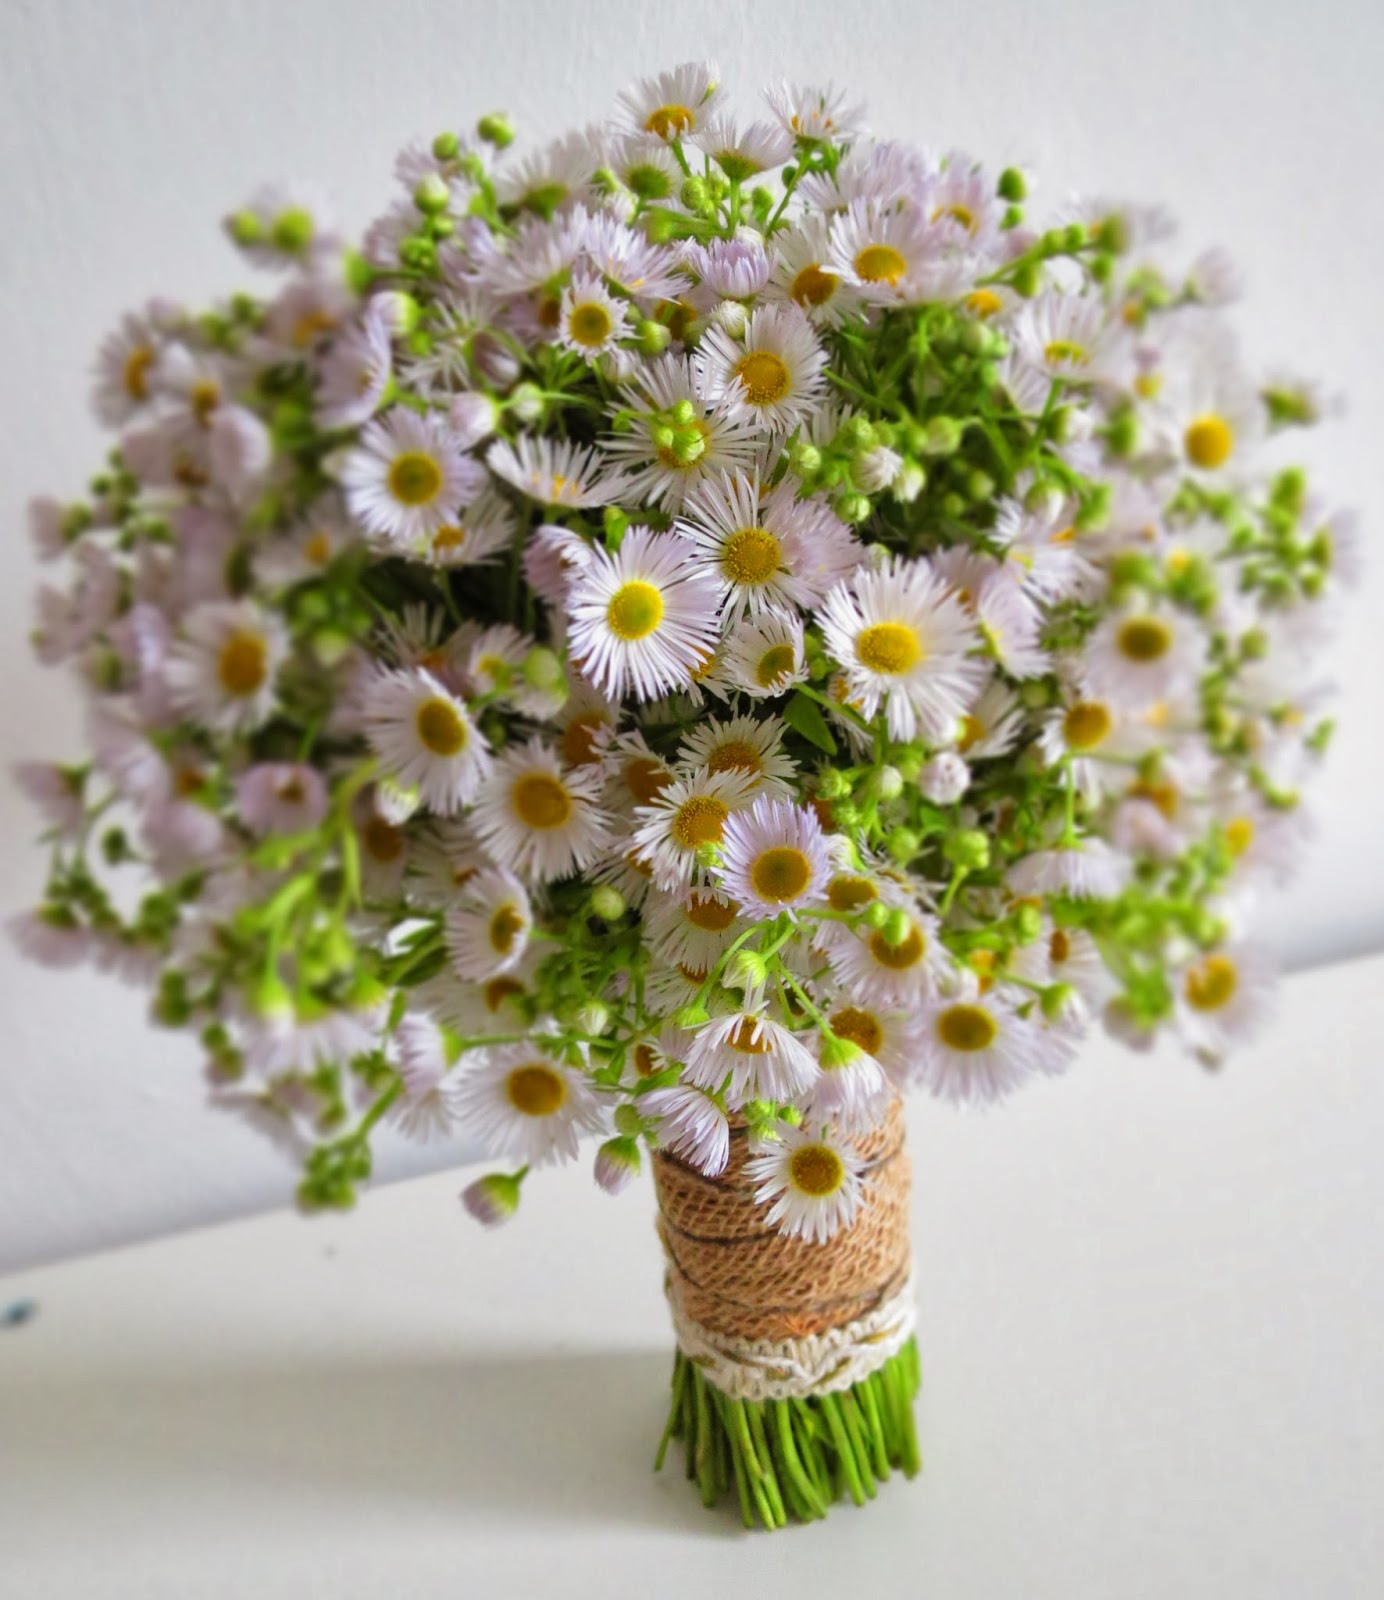 Fall Wedding Flowers - Choose the Right Fall Wedding Flowers For the Month